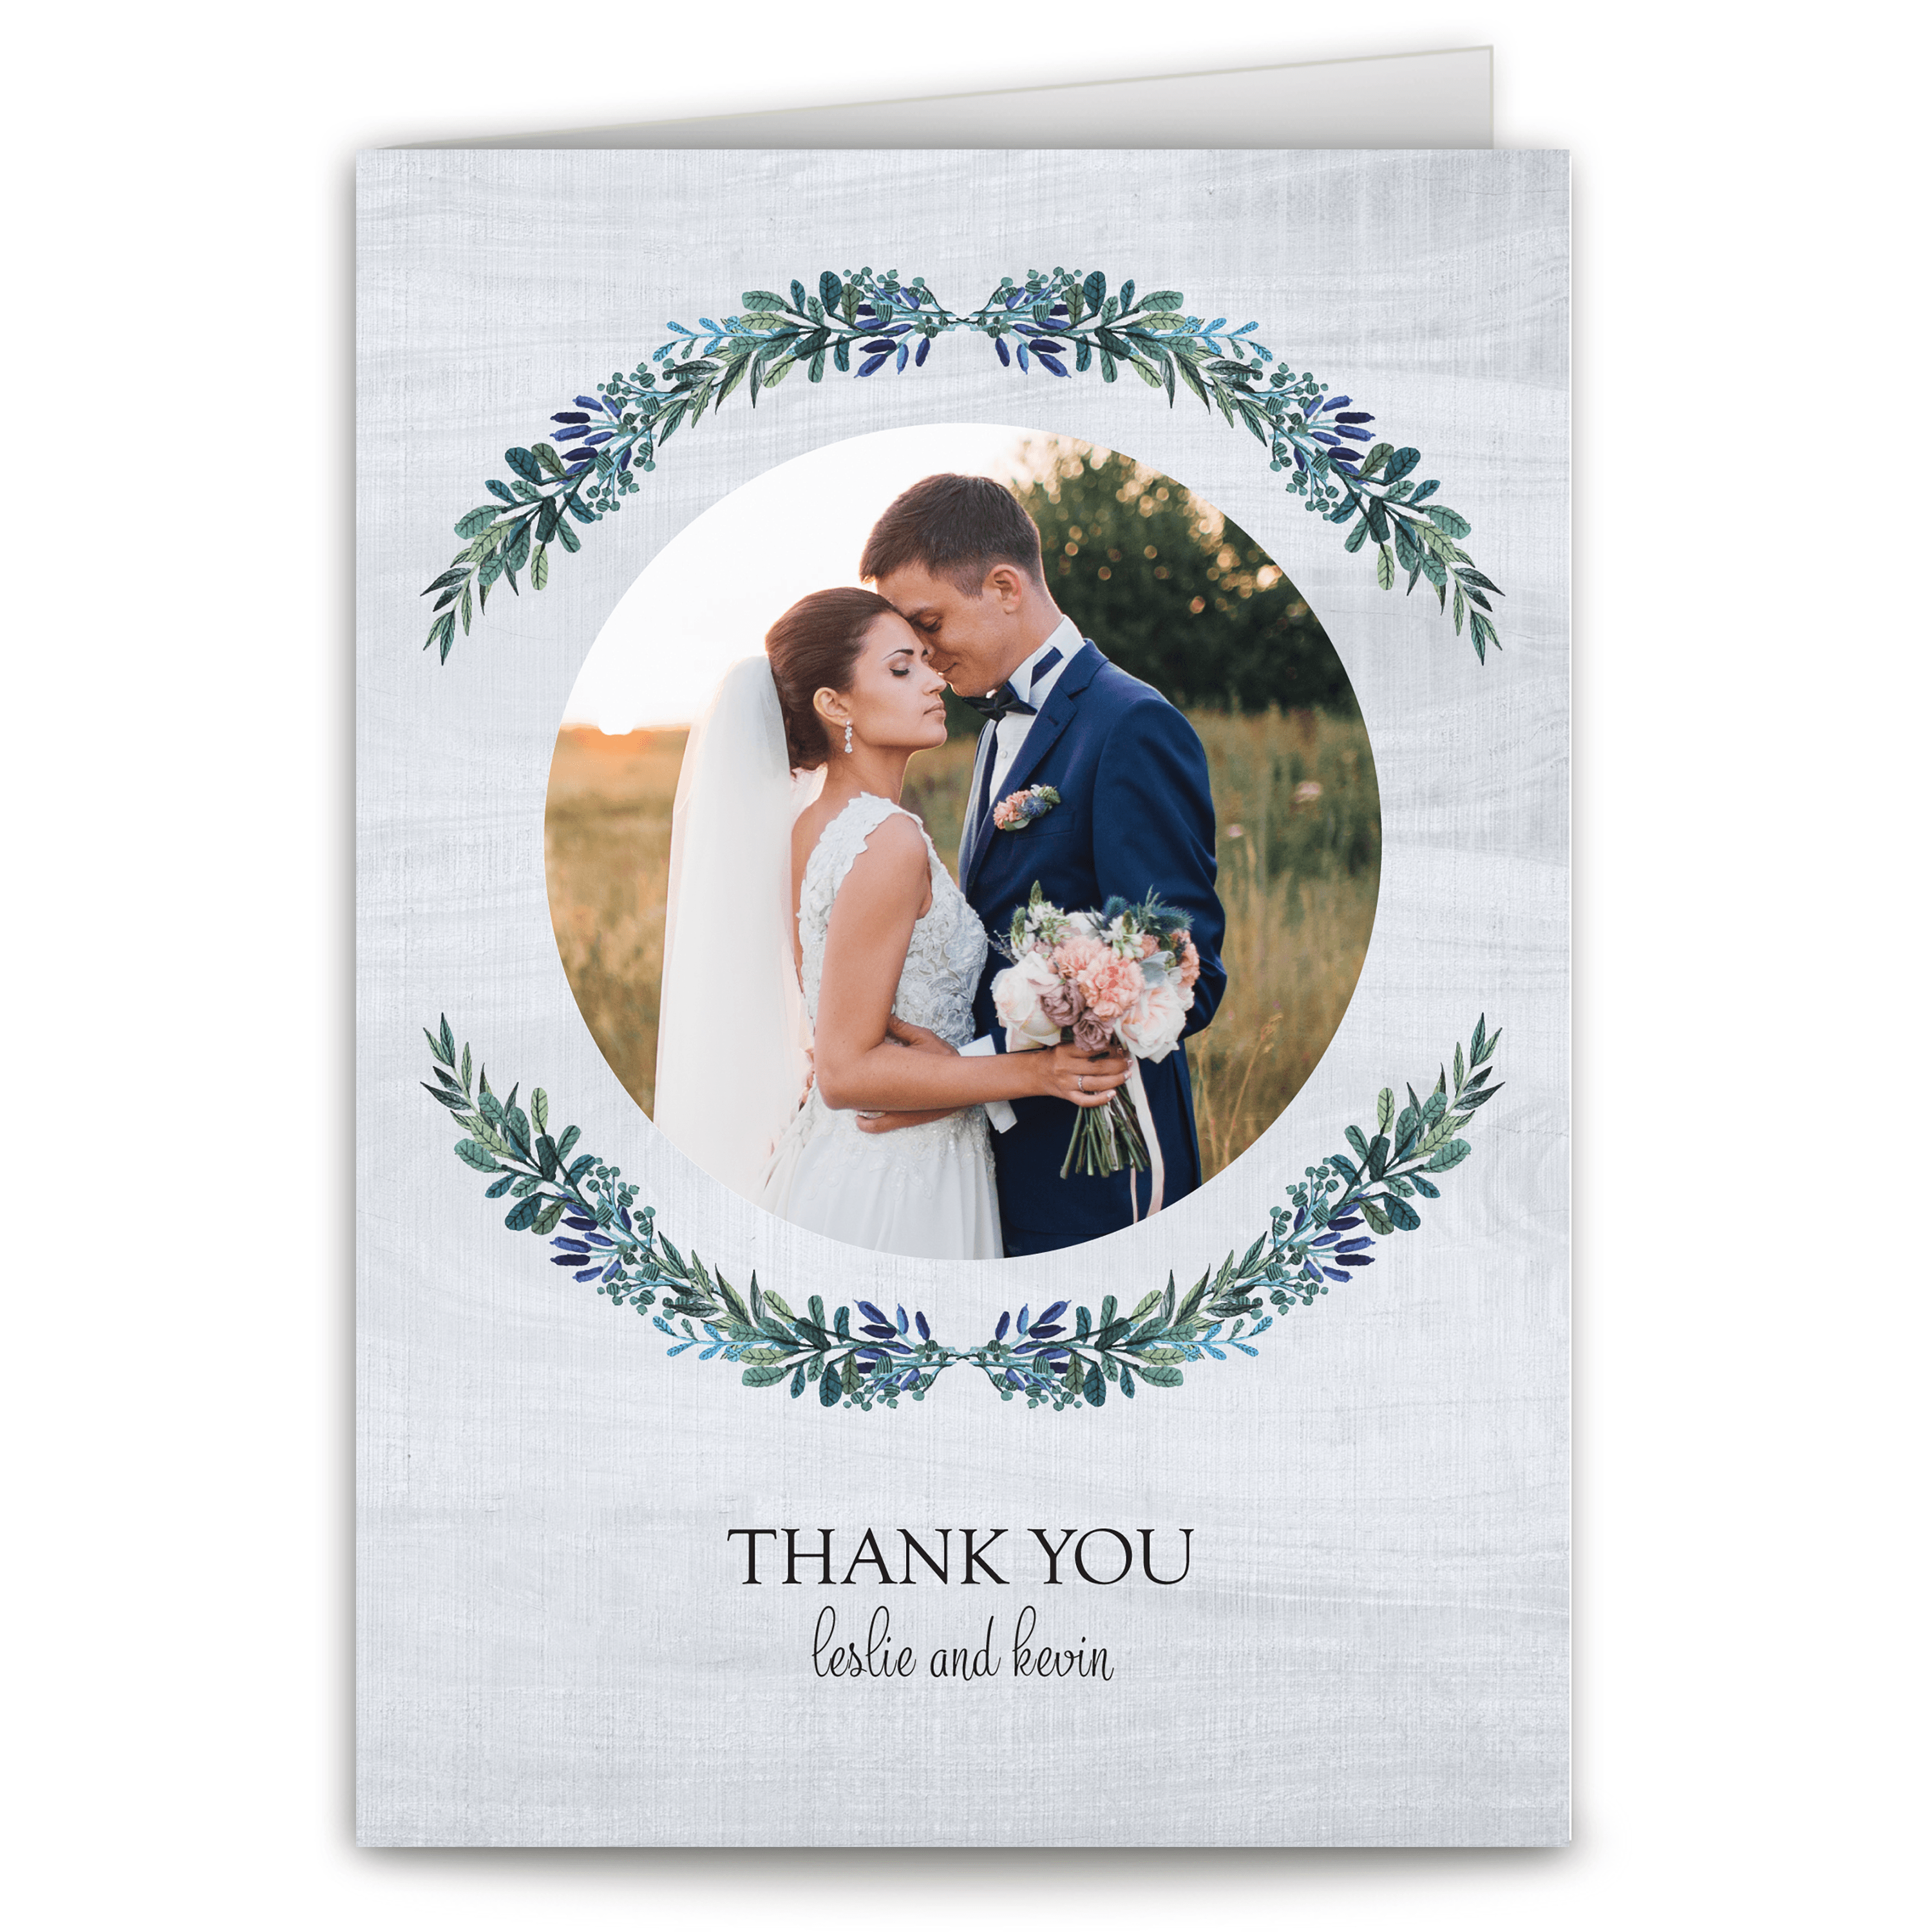 Personalized Wedding Thank You Card - Rustic Romance - 5 x 7 Folded